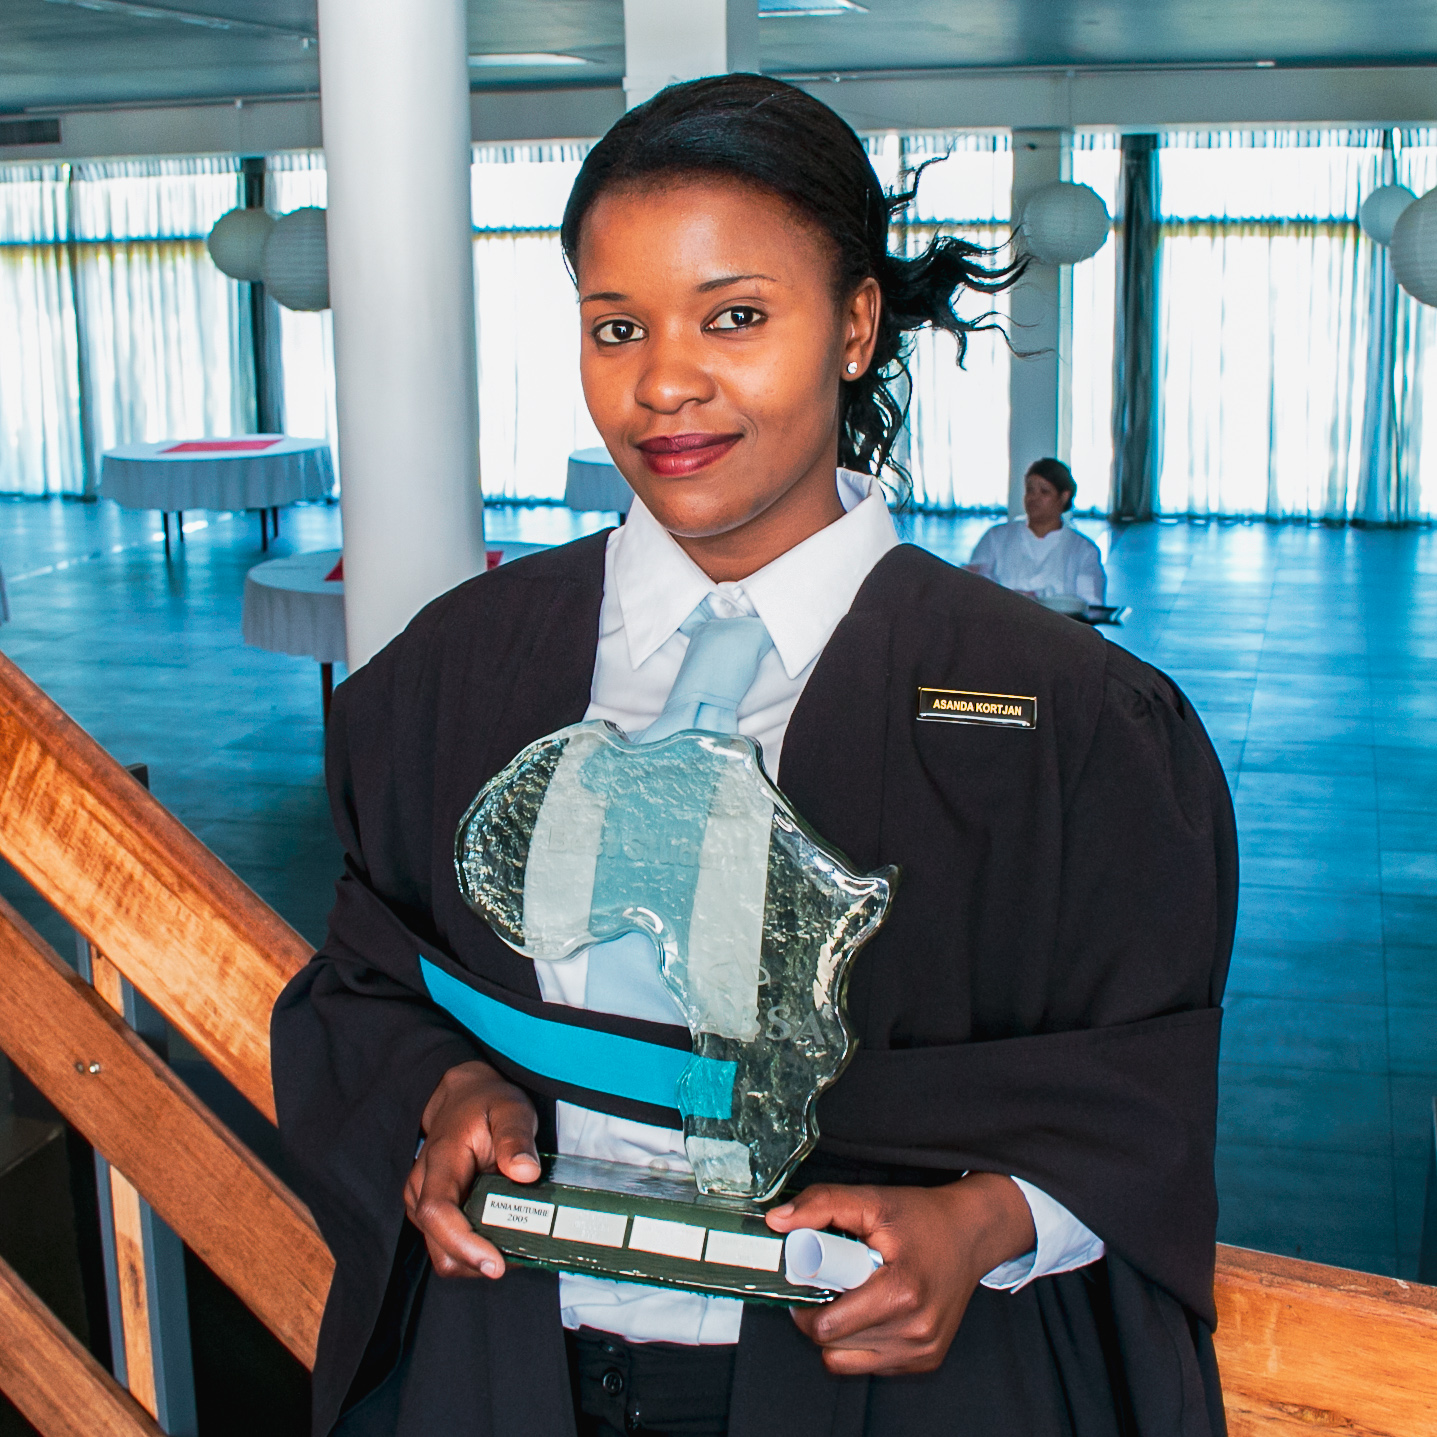 Asanda holding her prize for graduating at the top of her class, South Africa College for Tourism, November 2017.